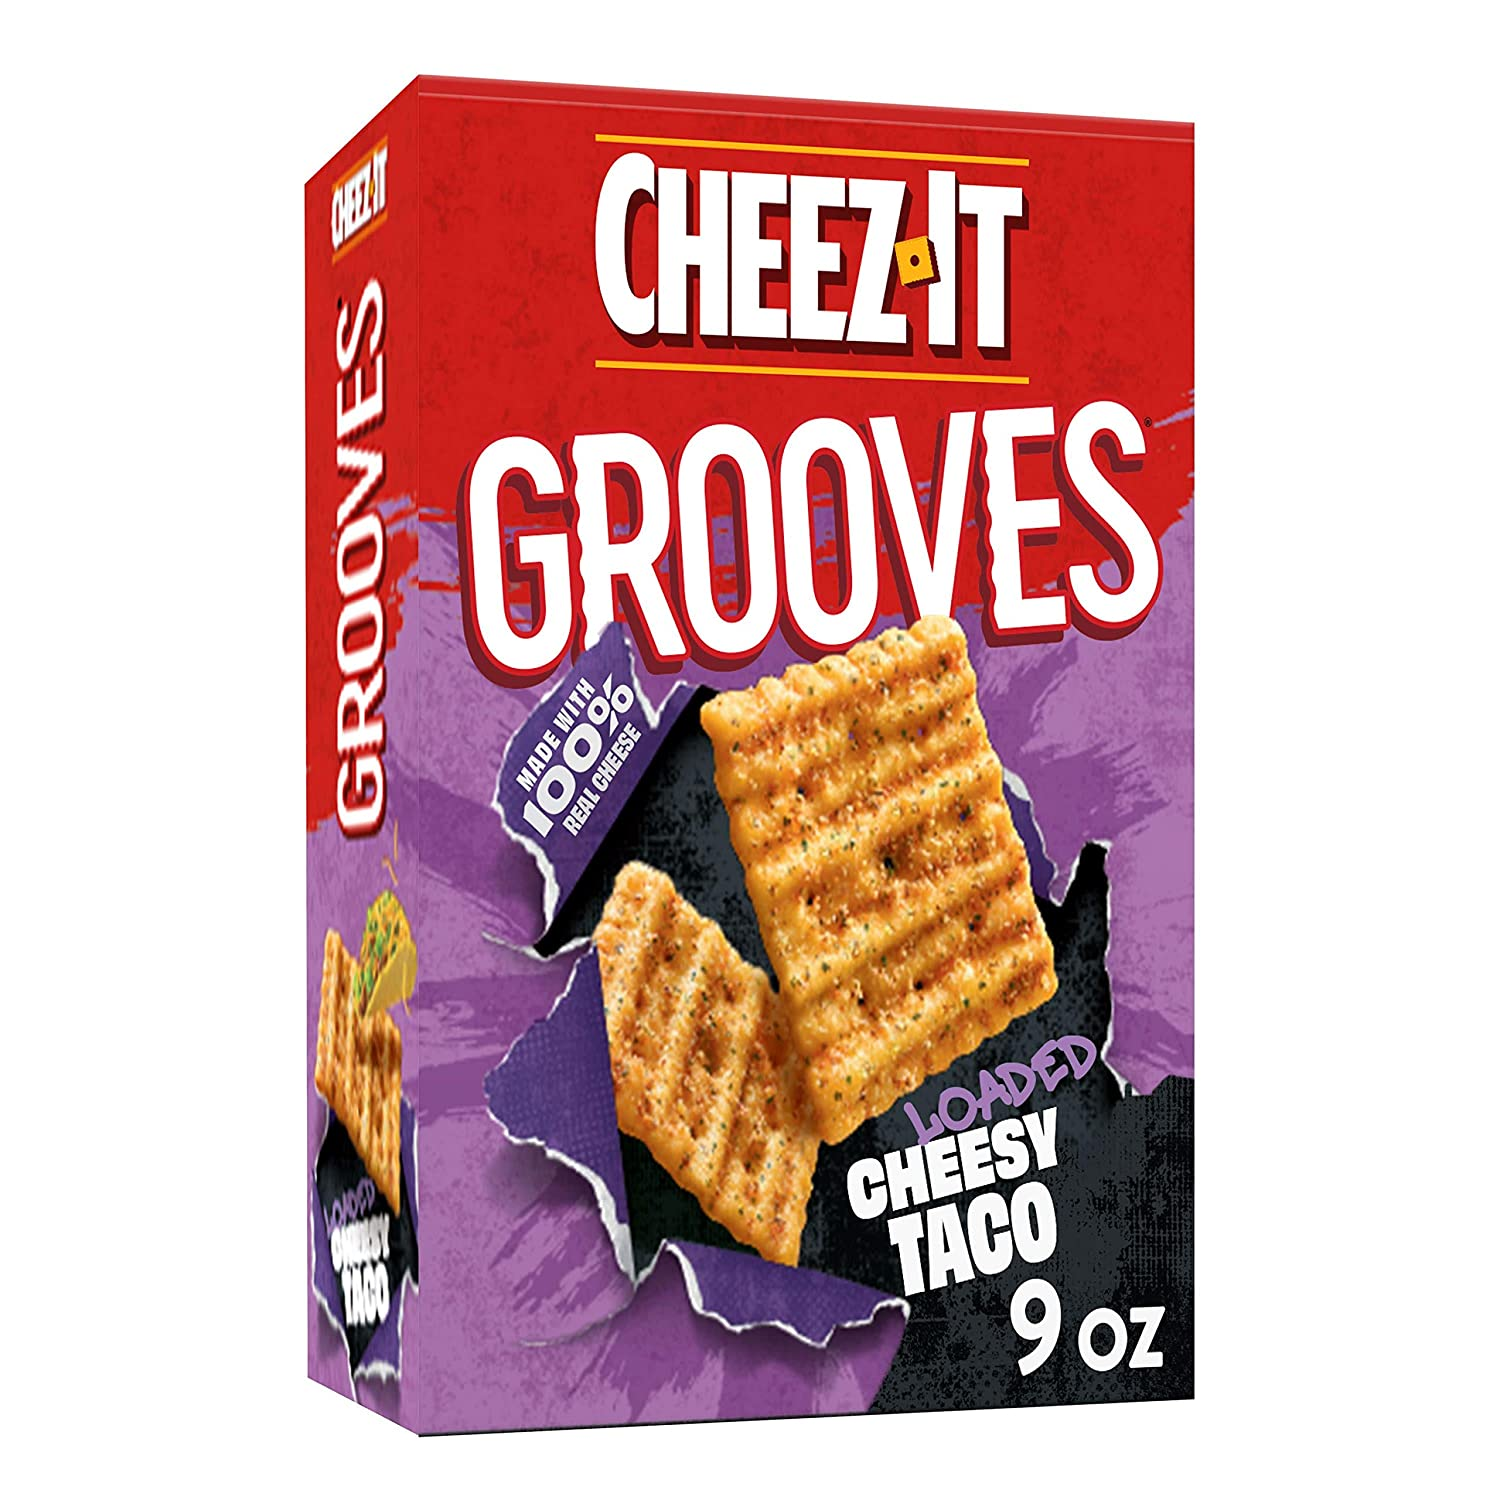 Cheez-ItGrooves, Crunchy Cheese Snack Crackers, Loaded Cheesy Taco, 9oz Box